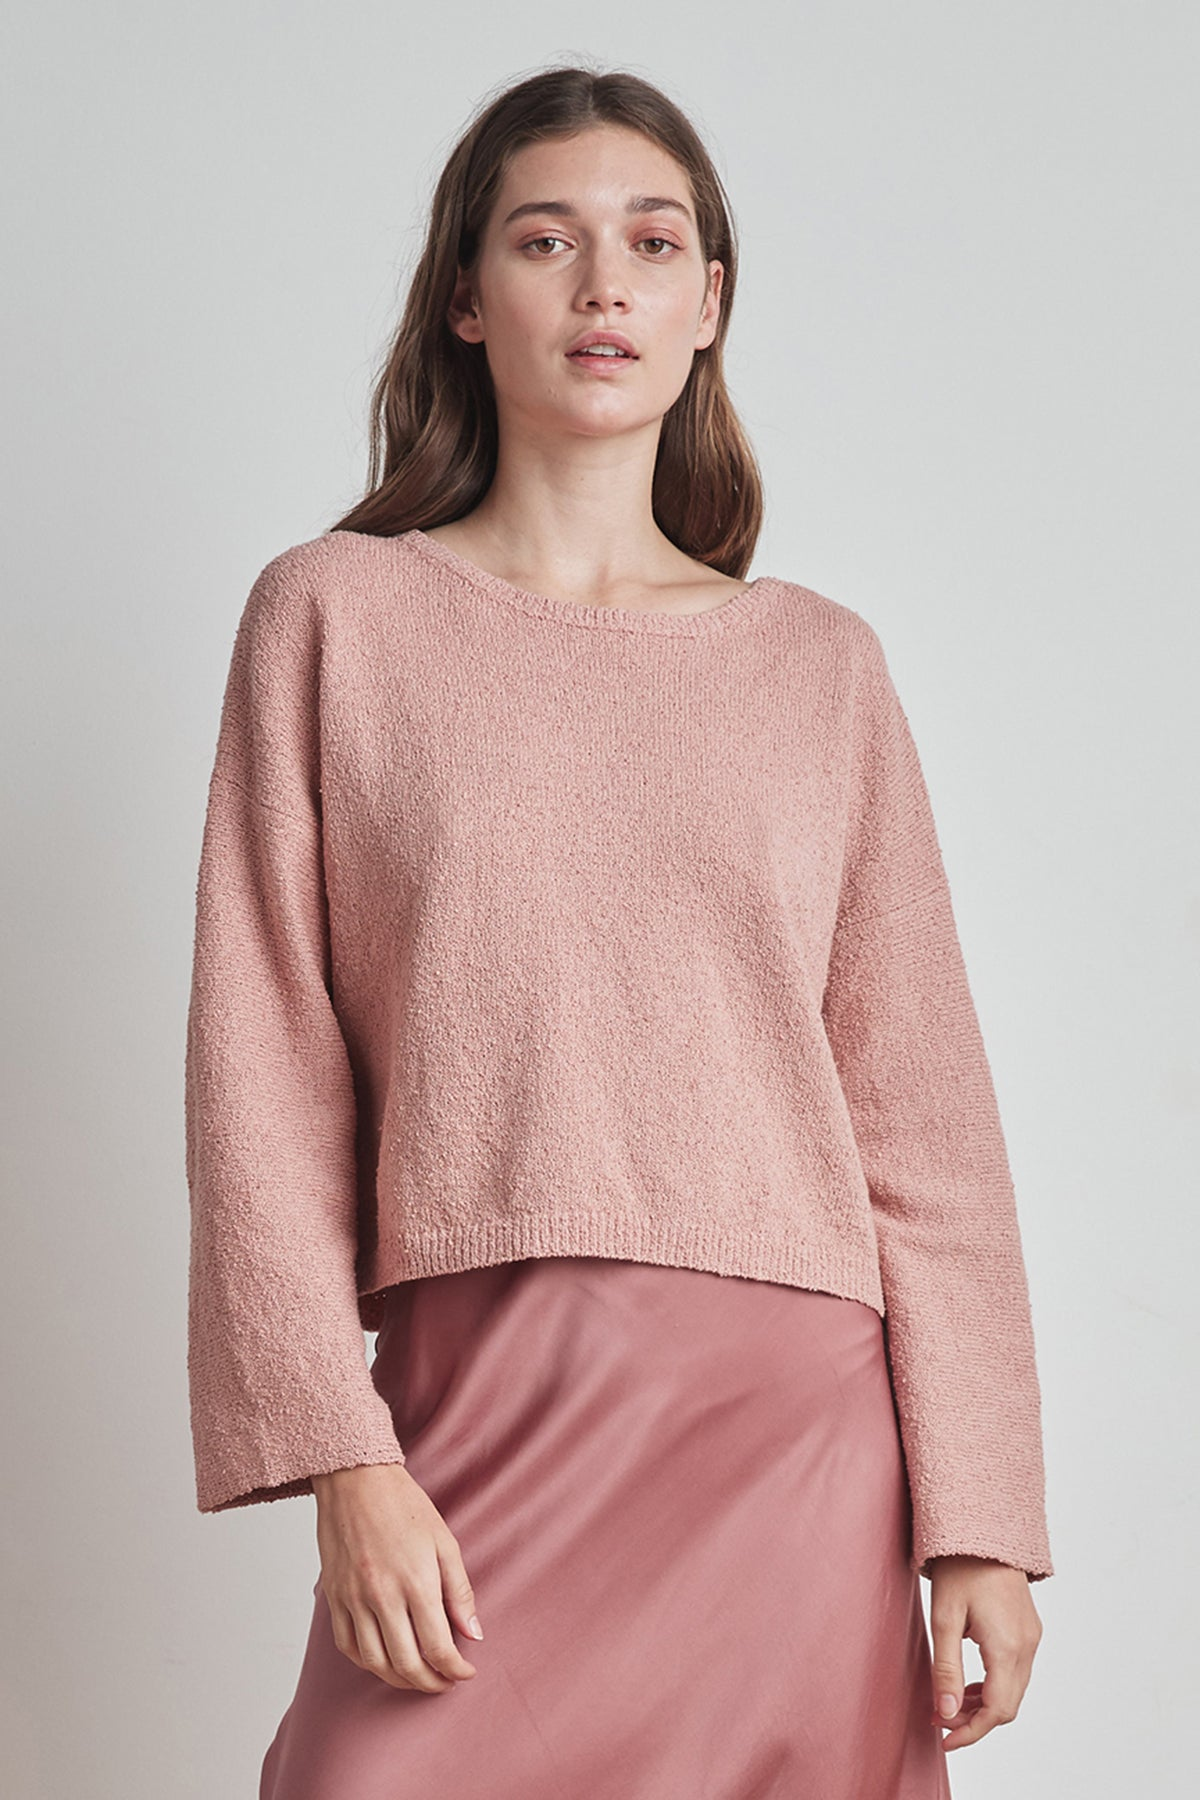 EMERY COTTON BOUCLE SWEATER